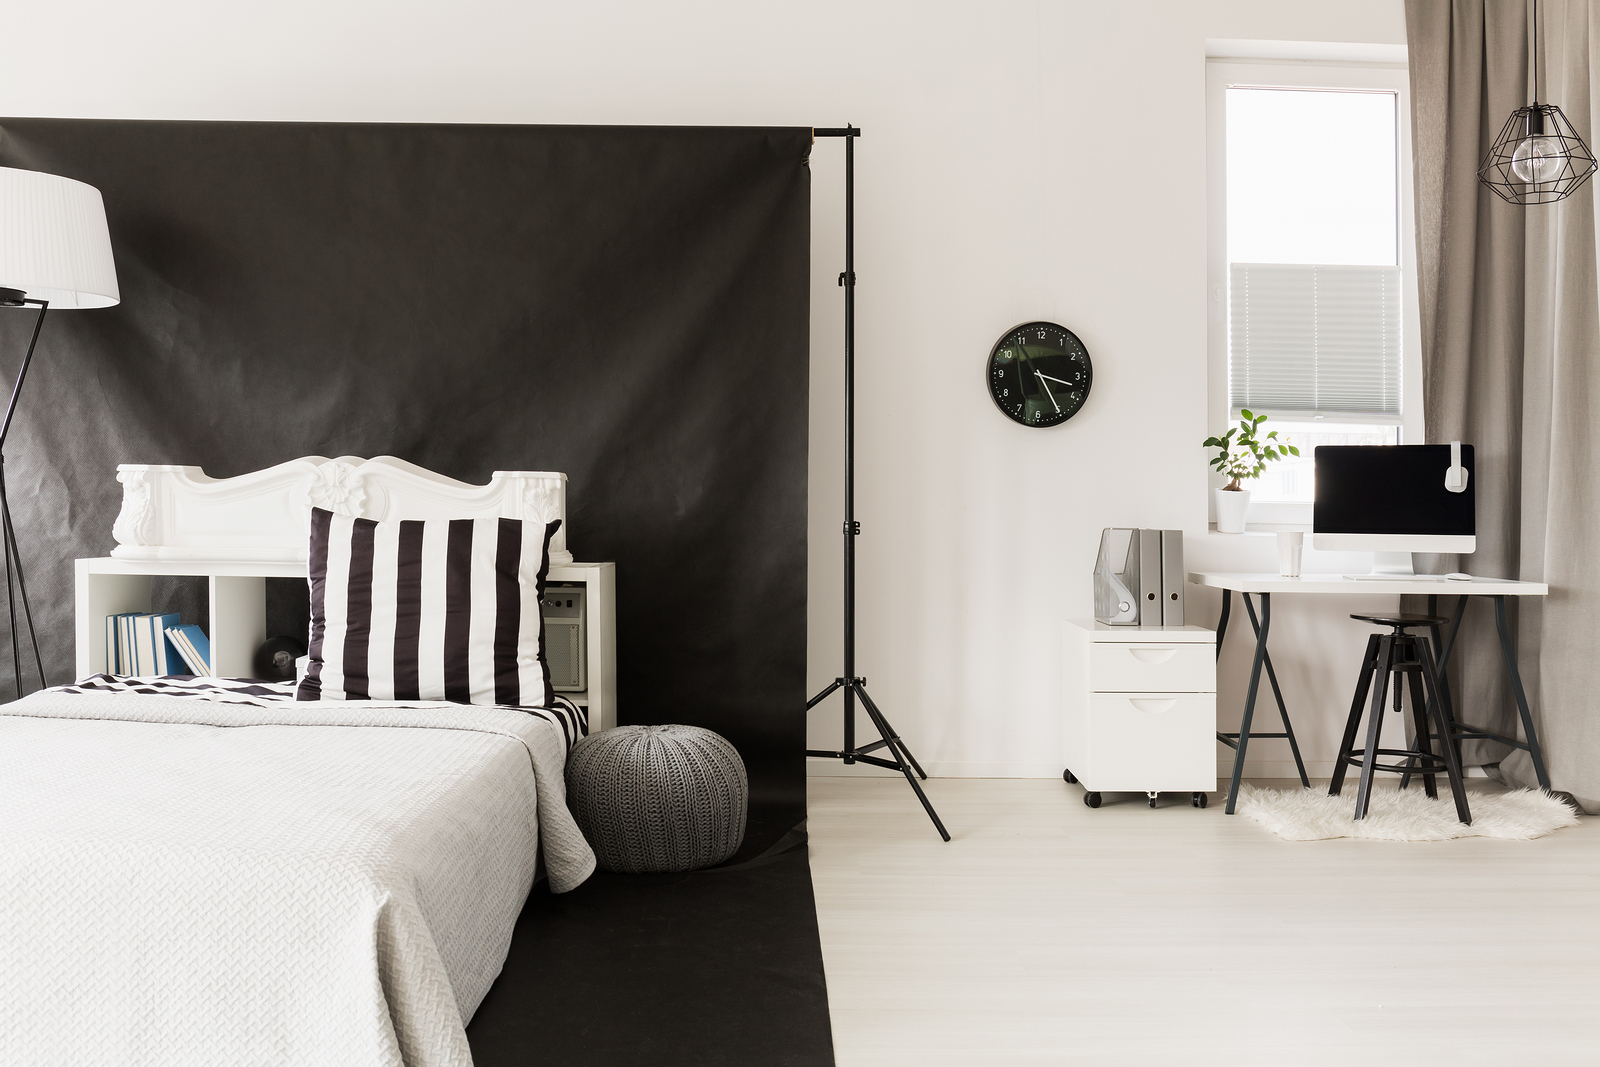 Home interior in black and white with sleeping and office space